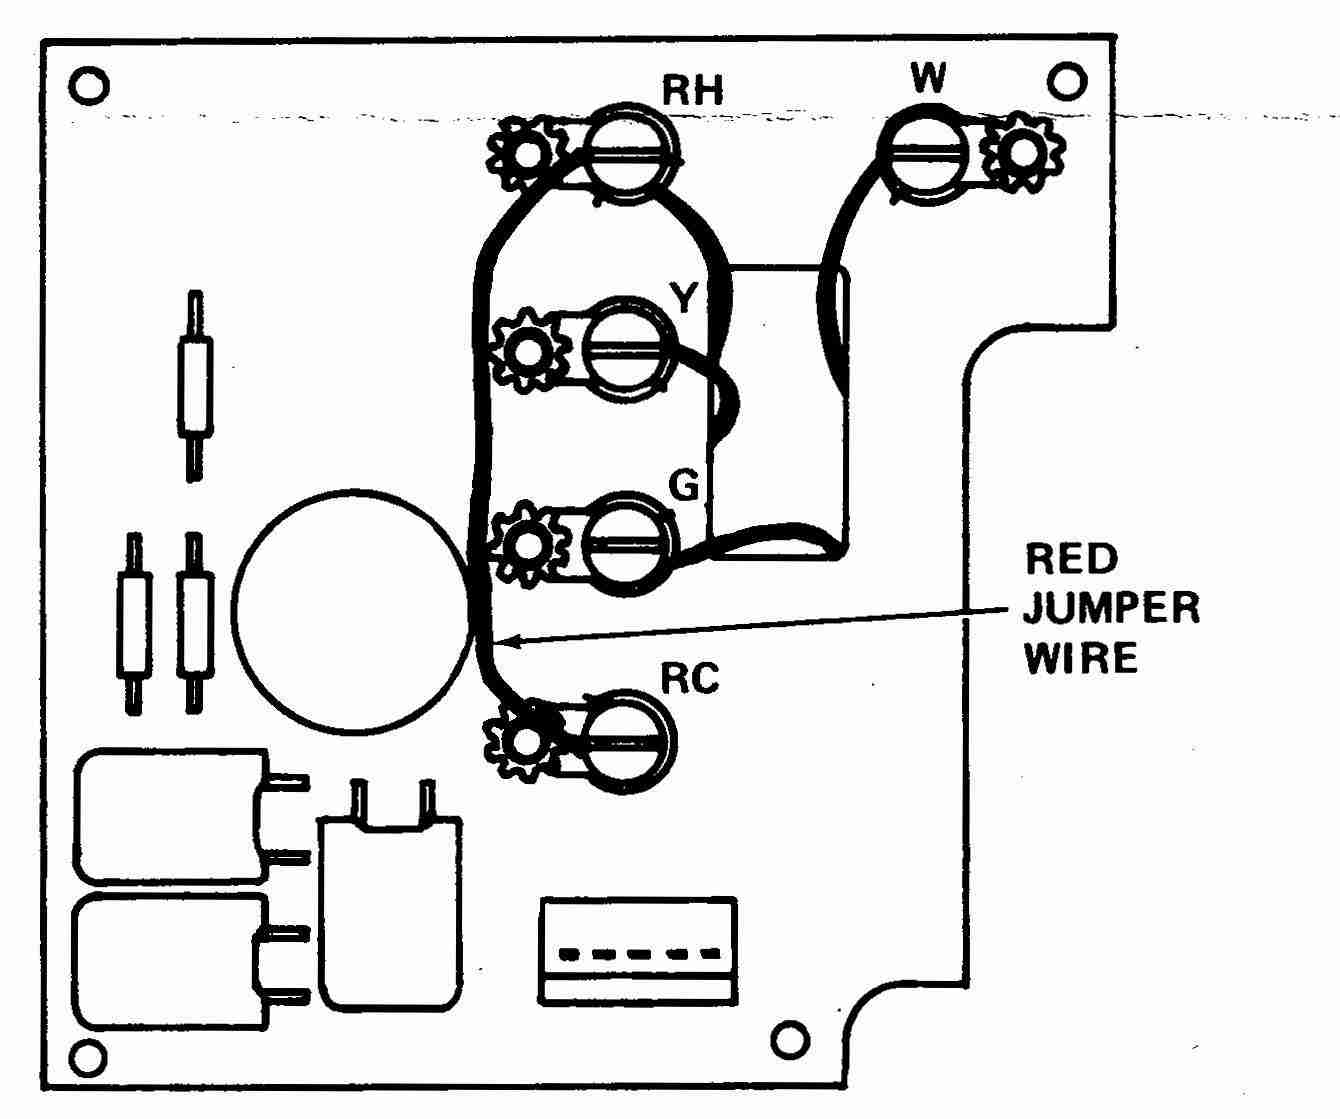 WR_1F90_006f16_DJFc?resize=665%2C555&ssl=1 white rodgers thermostat wiring diagram 1f78 the best wiring  at creativeand.co